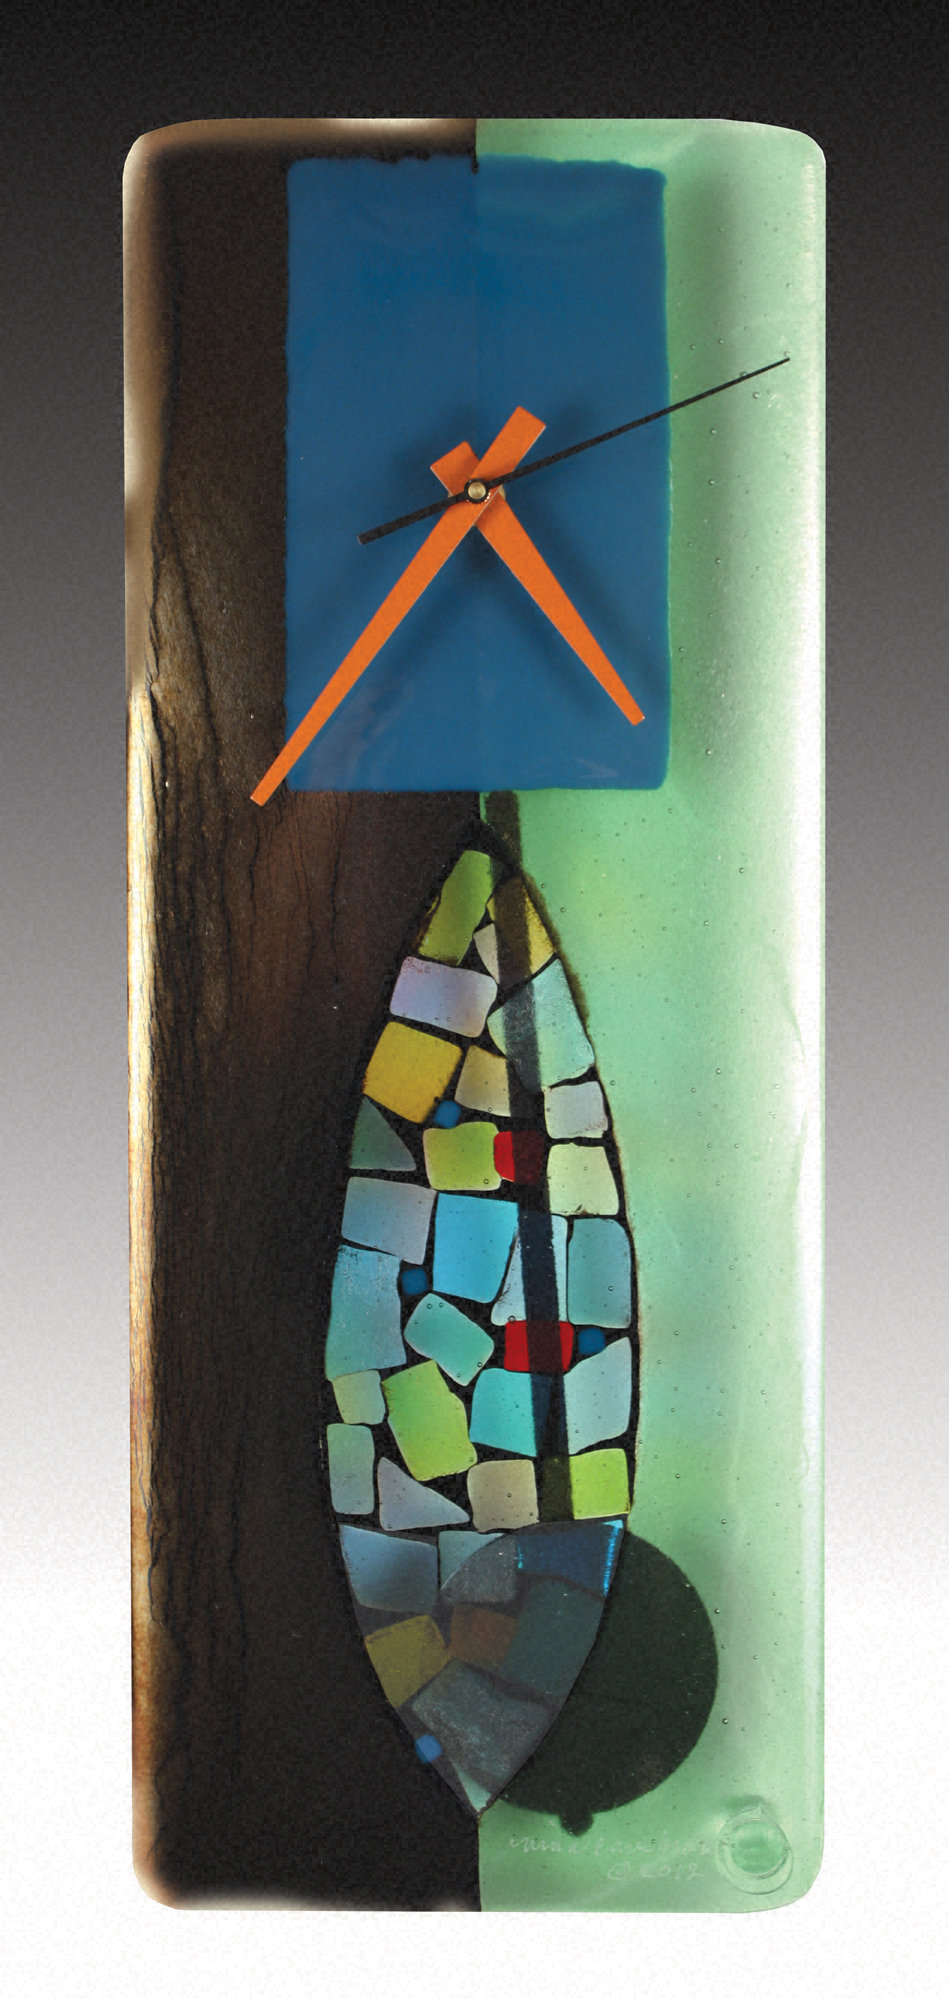 Portal Fused Glass Pendulum Clock - Art Glass Clock - by Nina Cambron